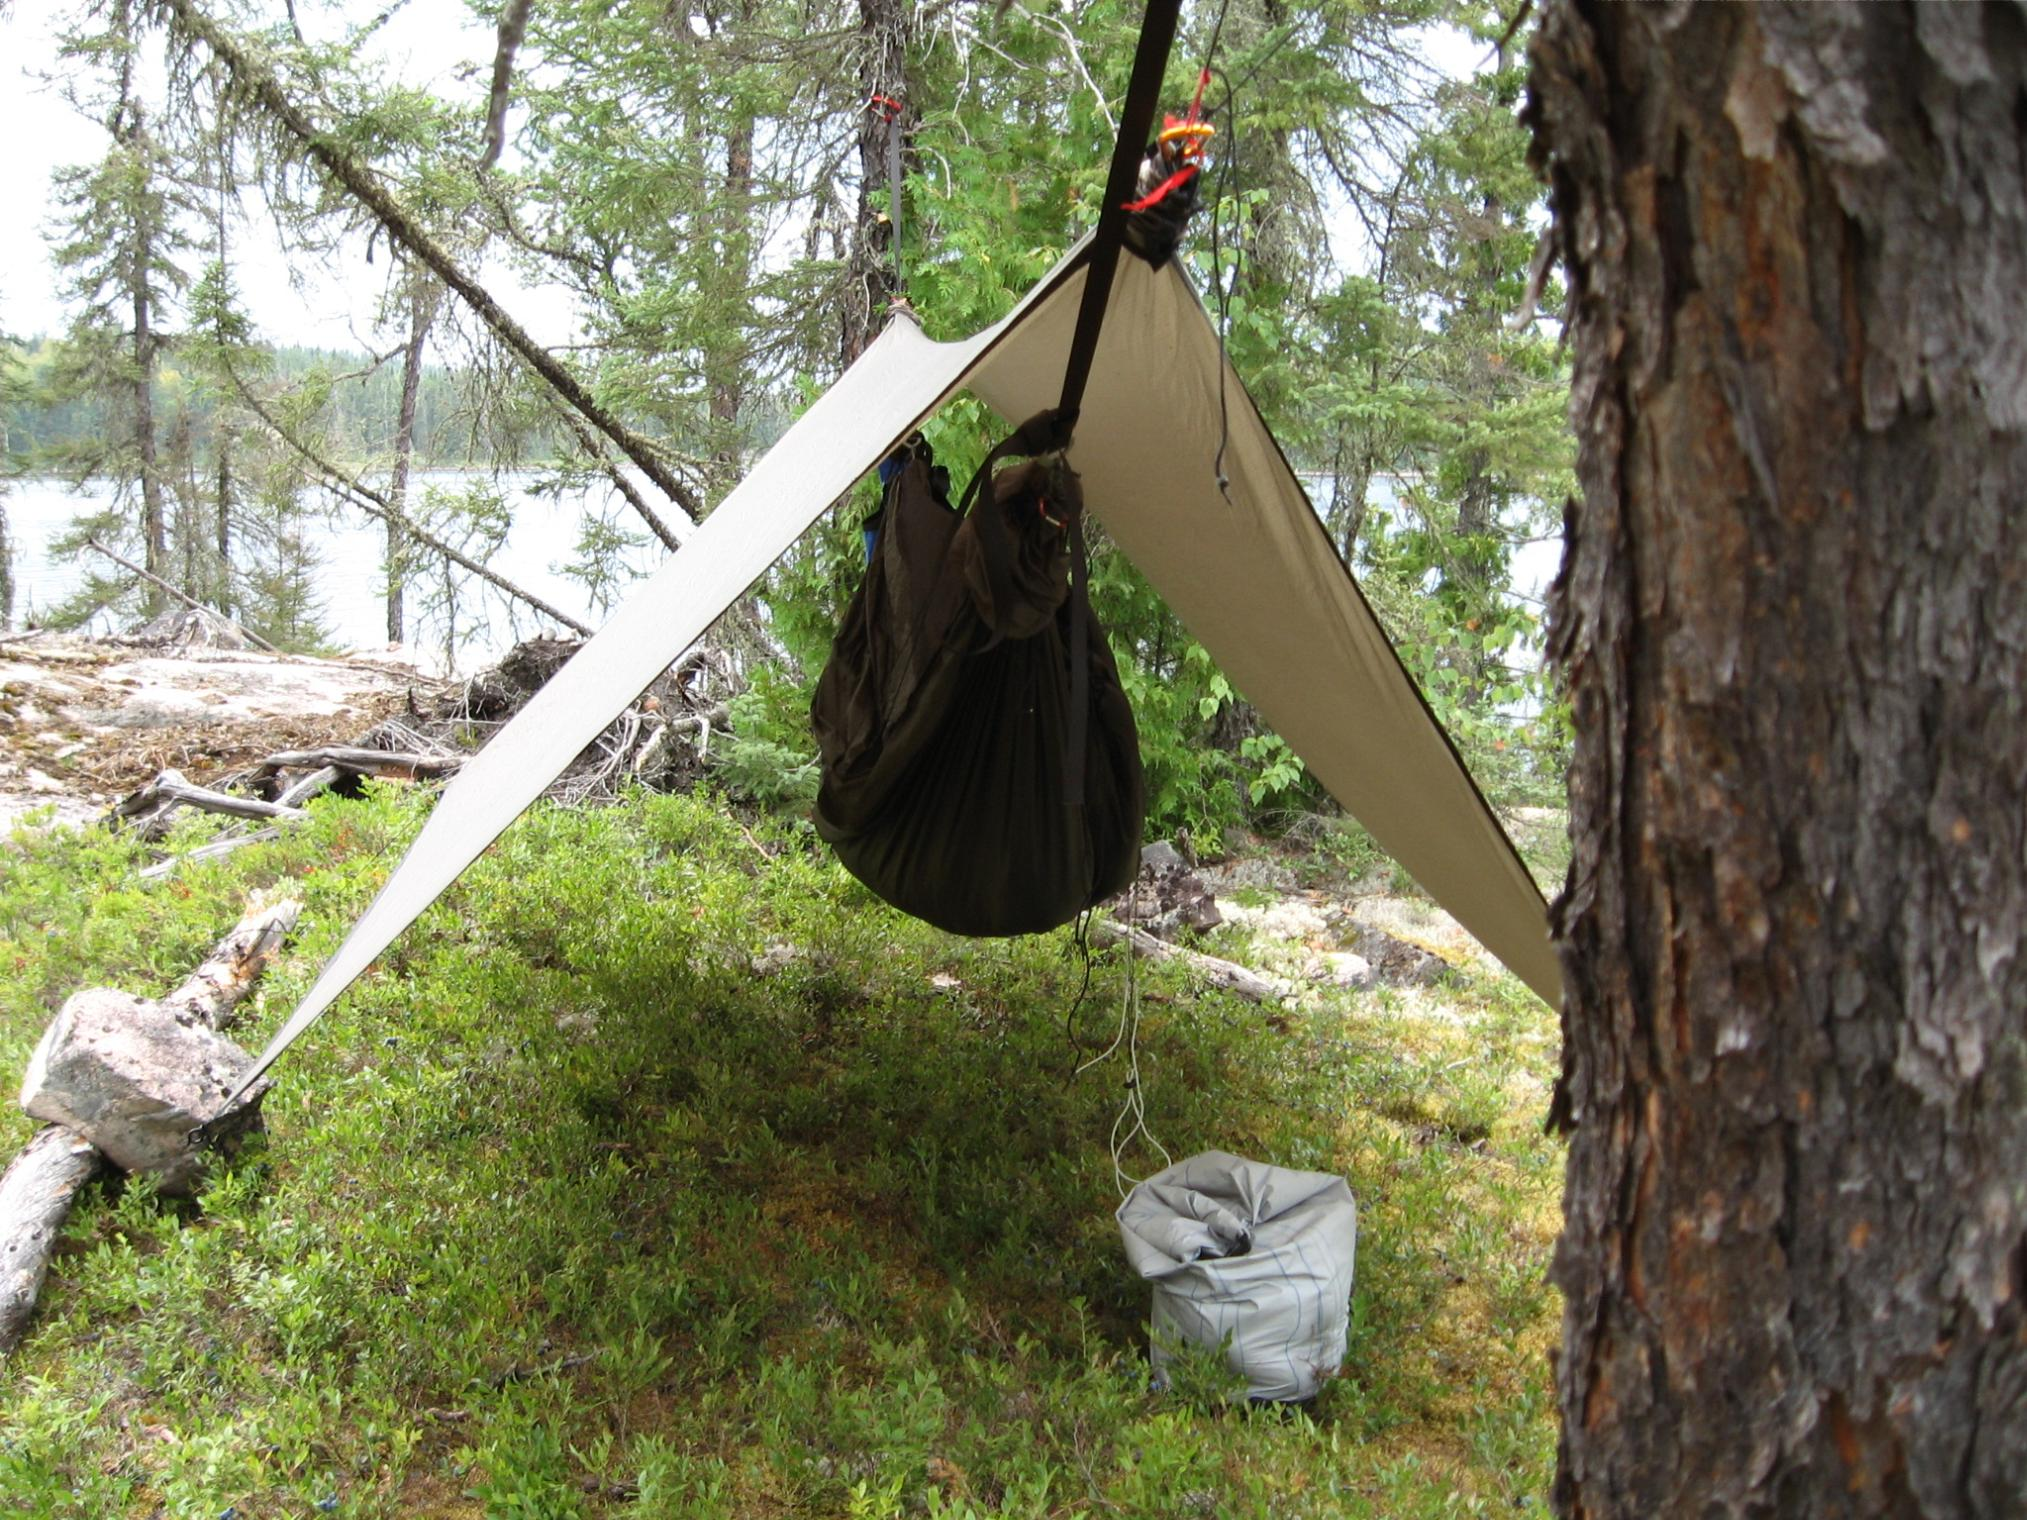 Bwca Hennessey Hammock Rain Fly Set Up Boundary Waters